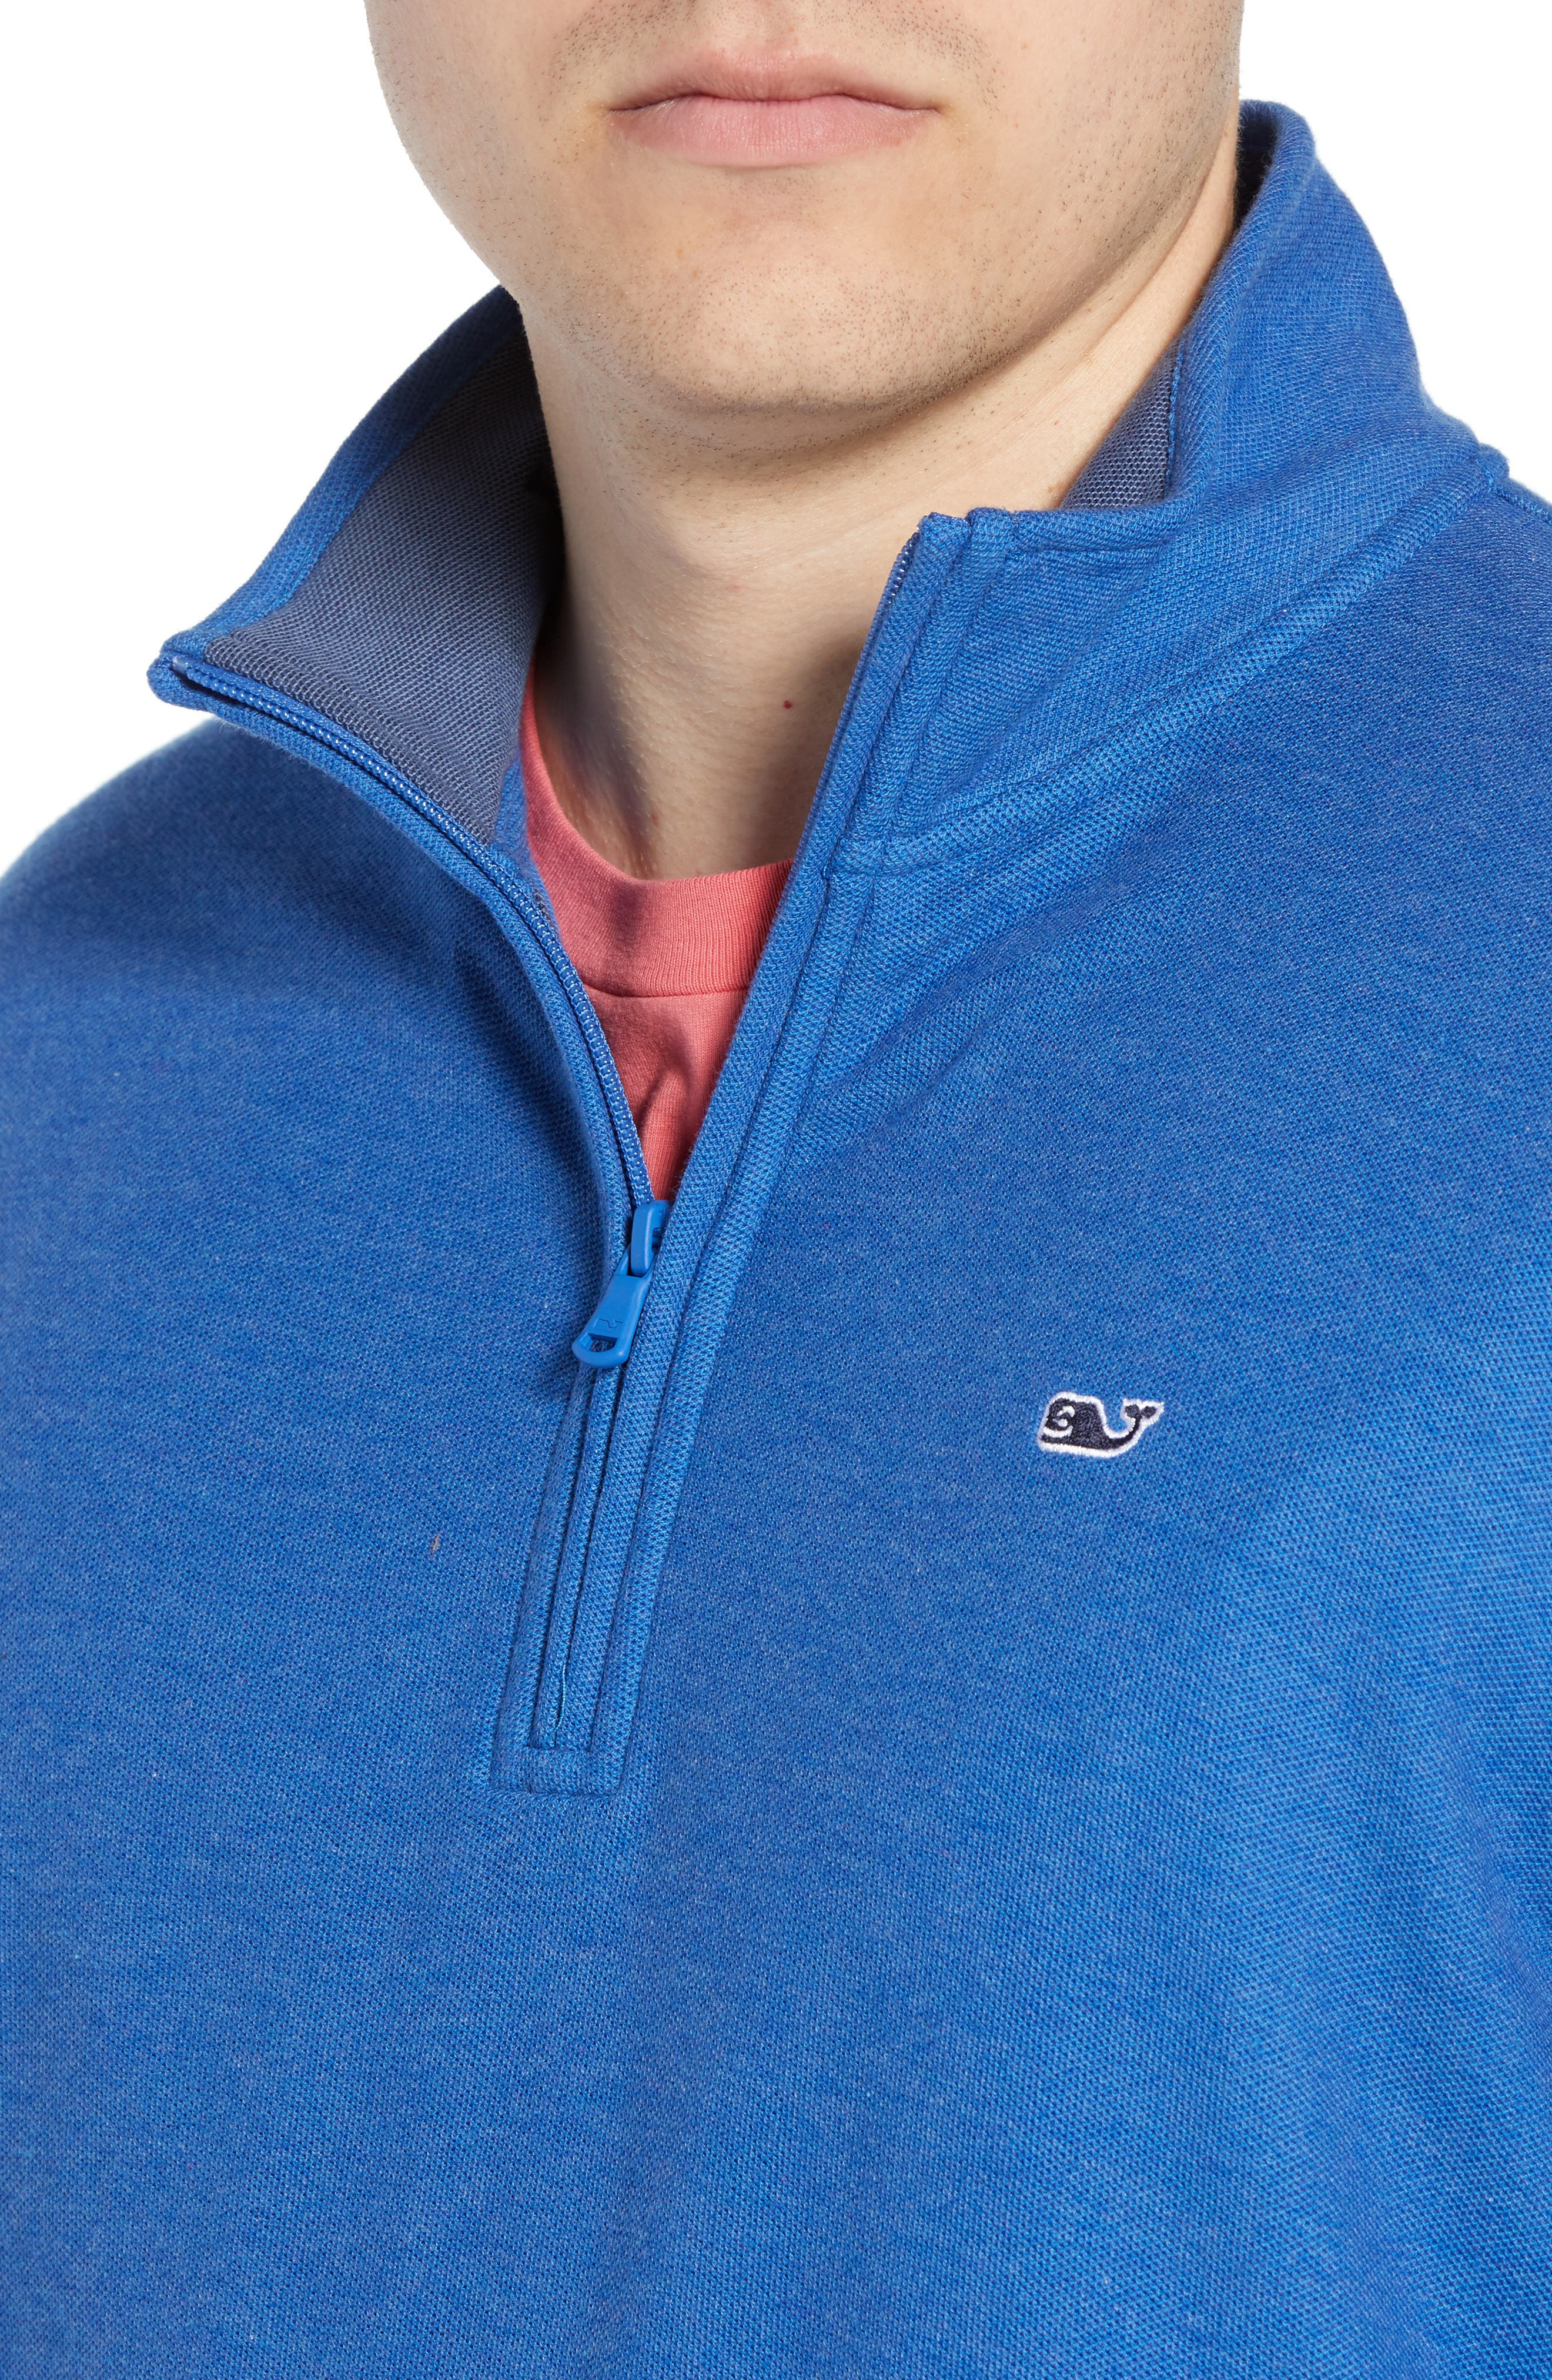 Breaker Saltwater Quarter Zip Pullover,                             Alternate thumbnail 4, color,                             HULL BLUE